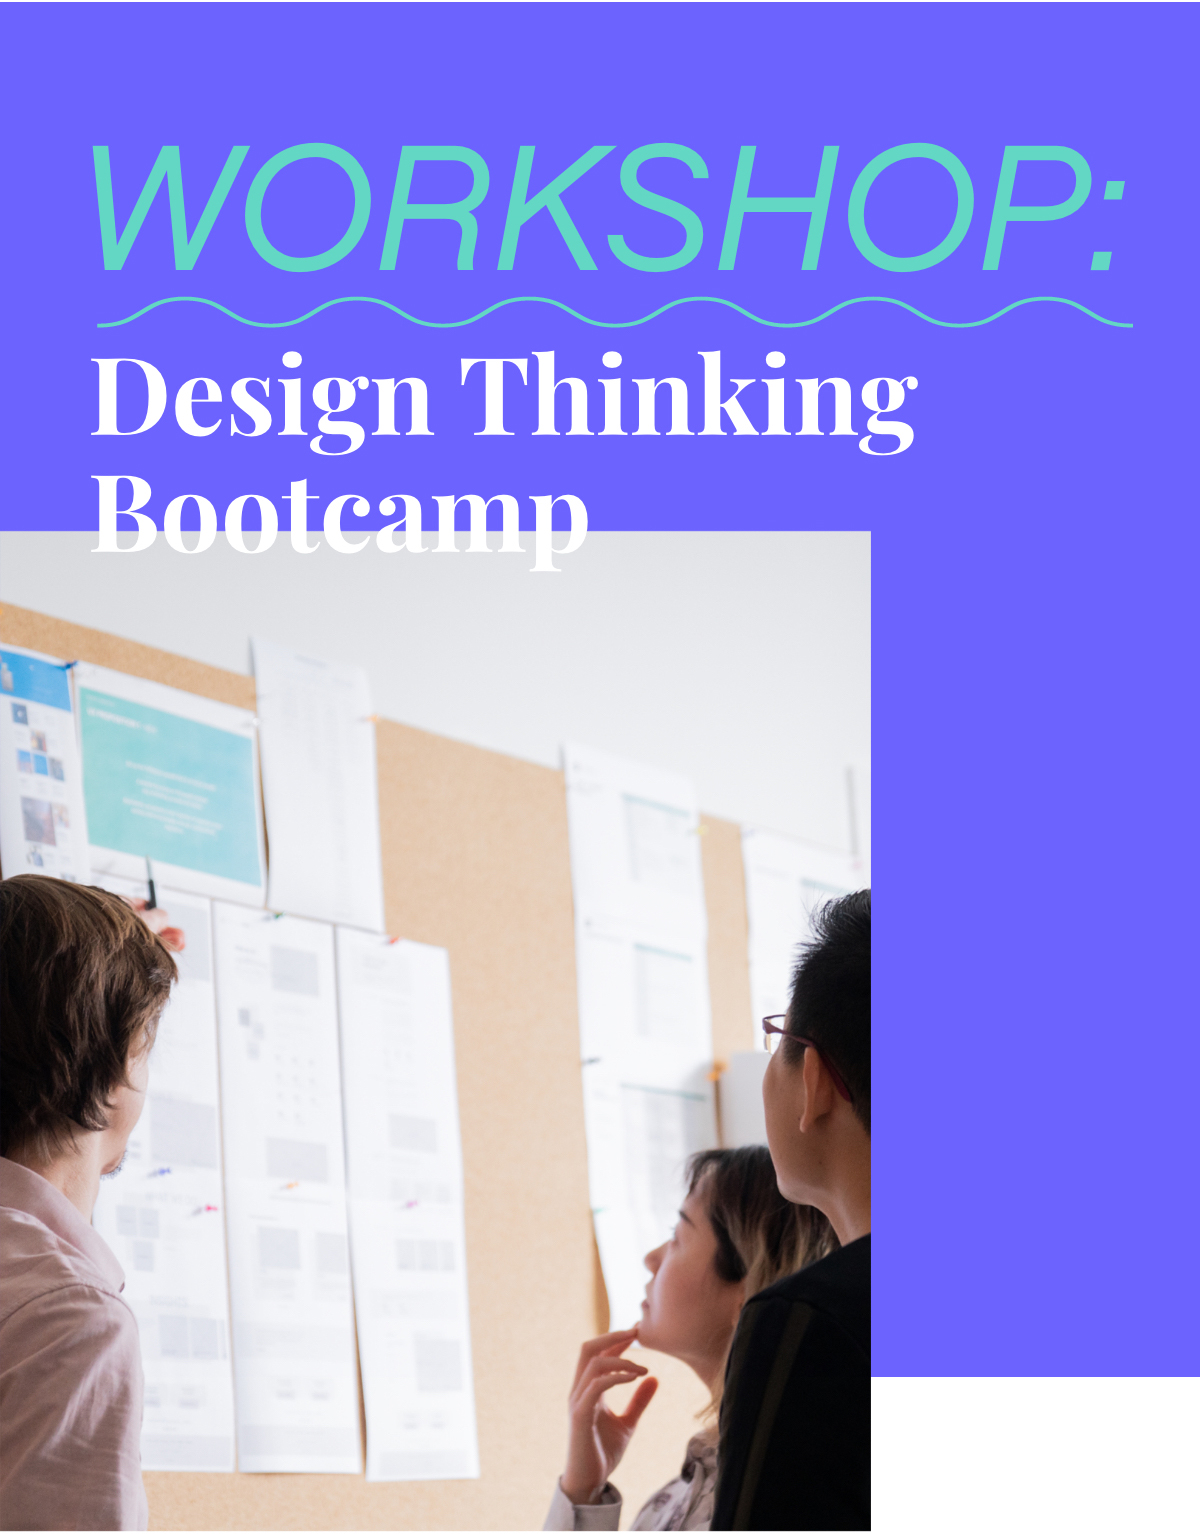 Workshop: Design Thinking Bootcamp